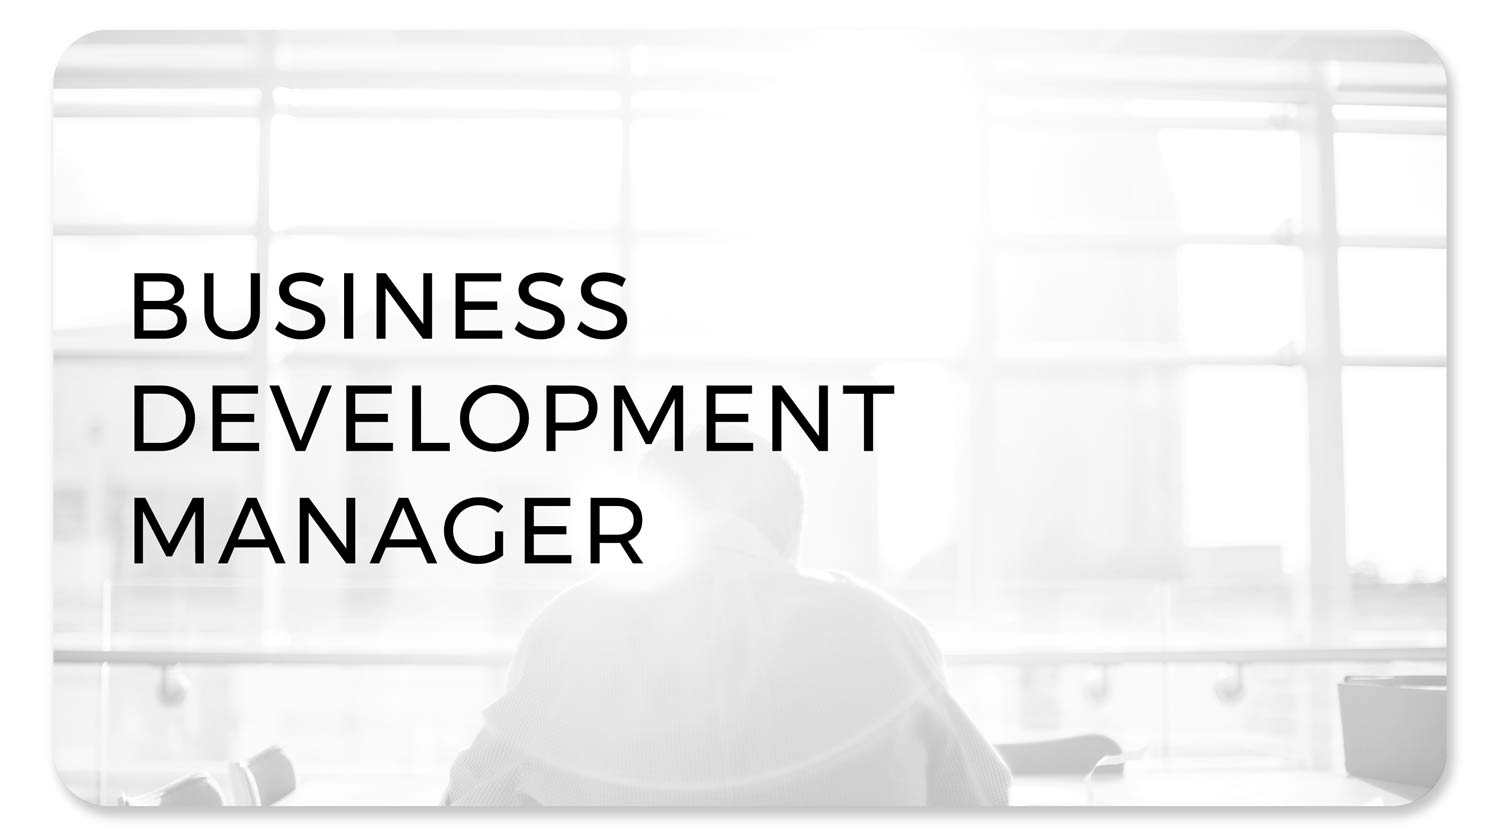 Business Development Manager Role